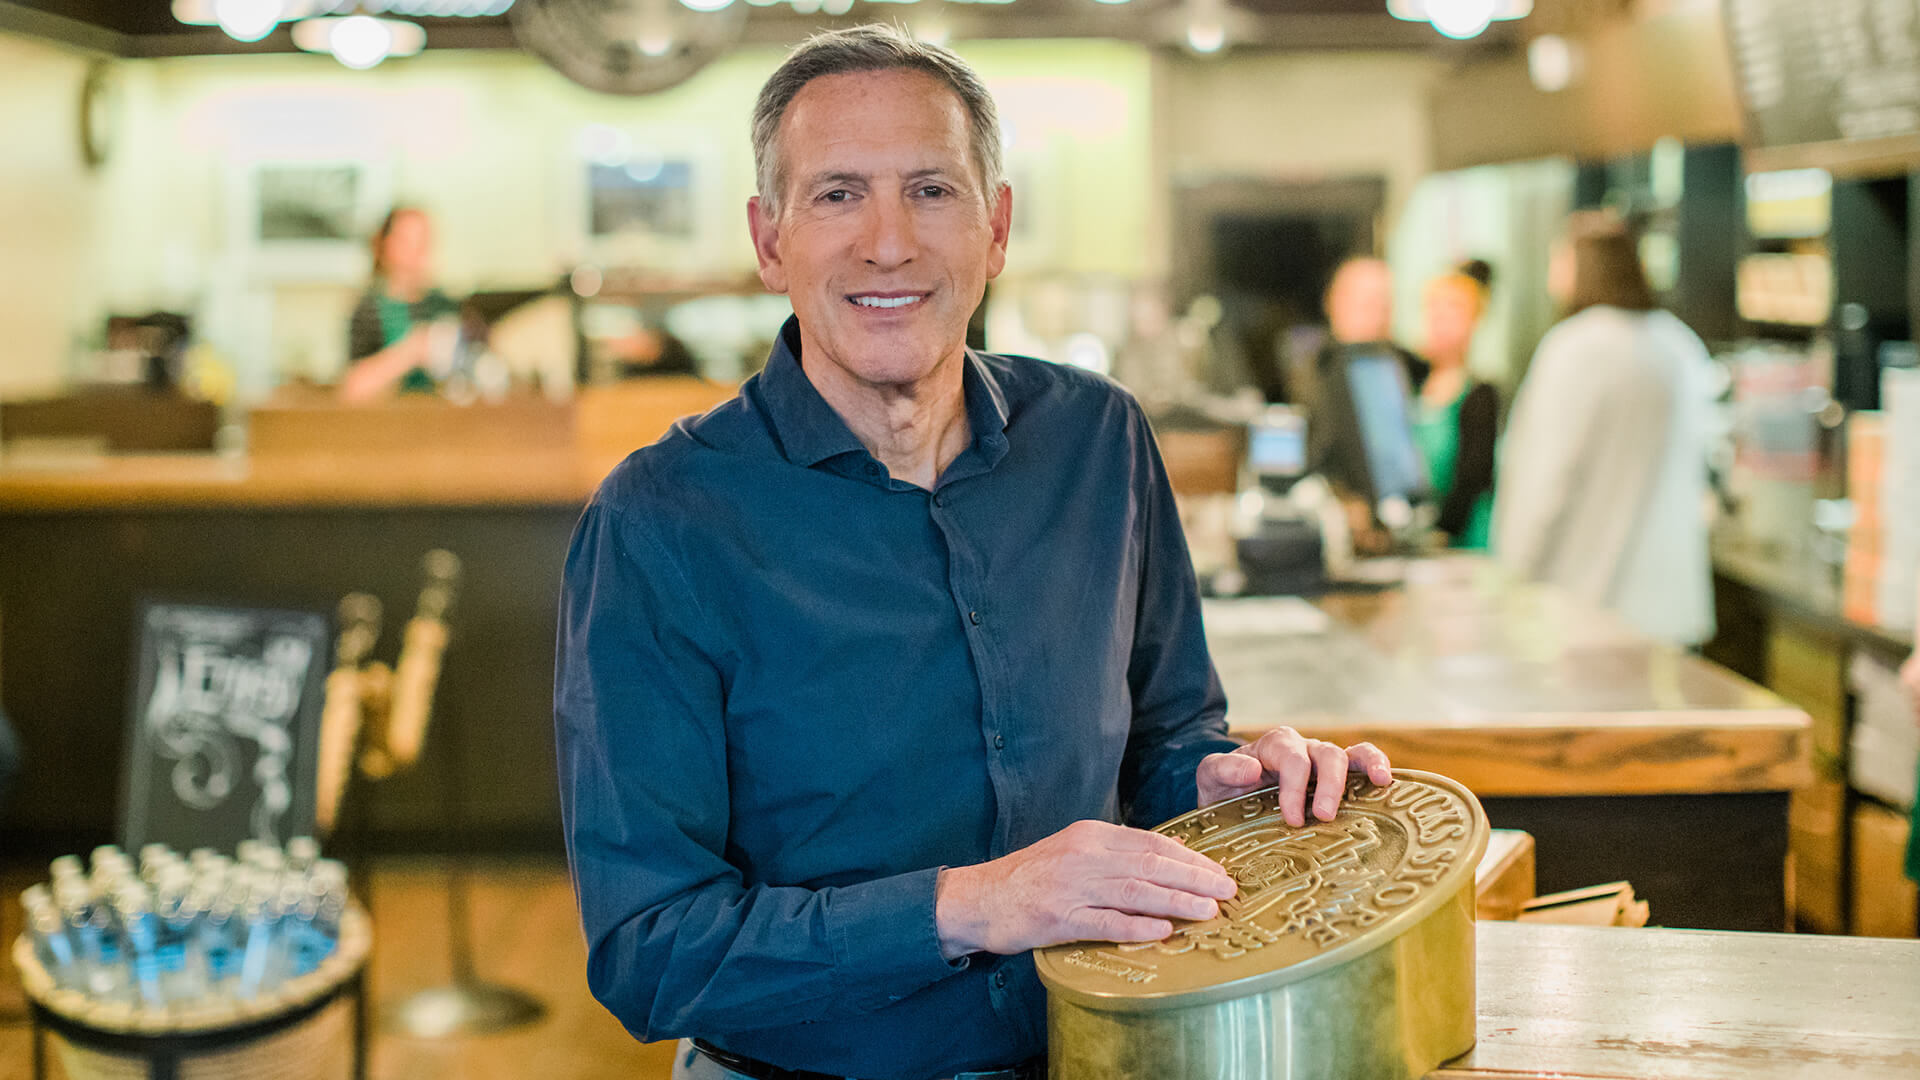 How Much Is Howard Schultz Worth? A Look at His Finances as He Mulls Presidential Bid